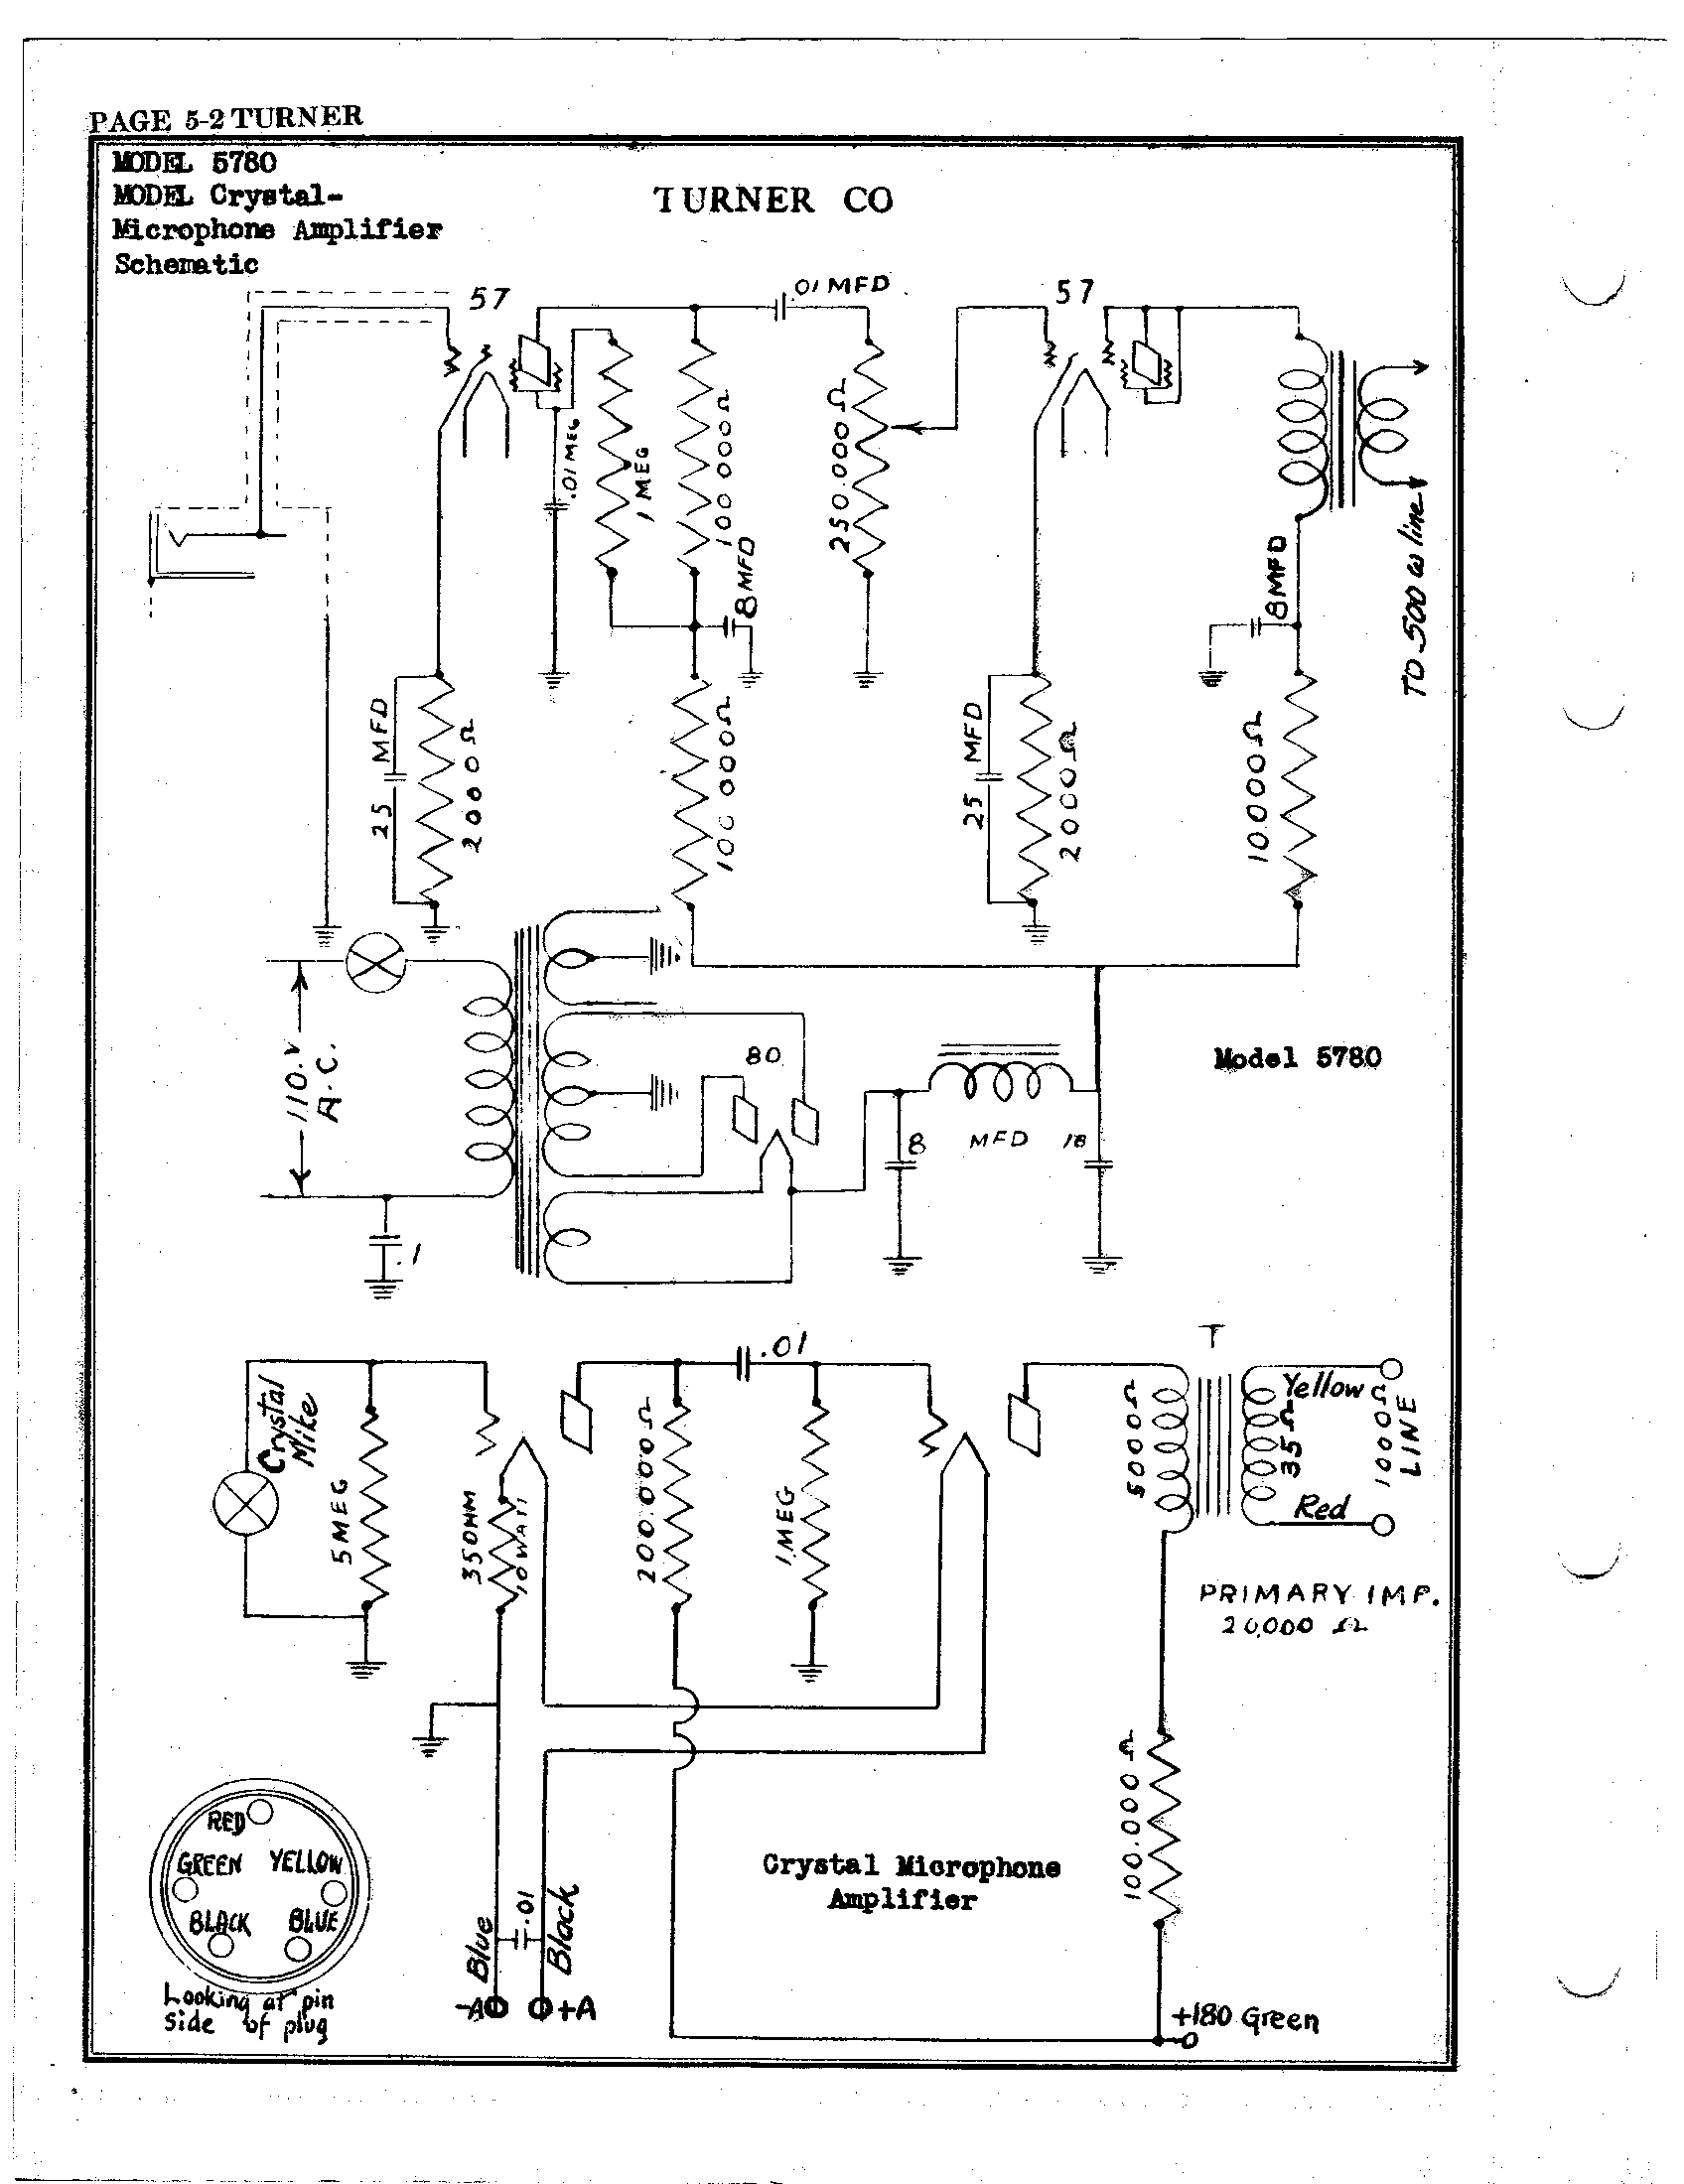 [DIAGRAM] Guitar Footswitch Wiring Diagram FULL Version HD